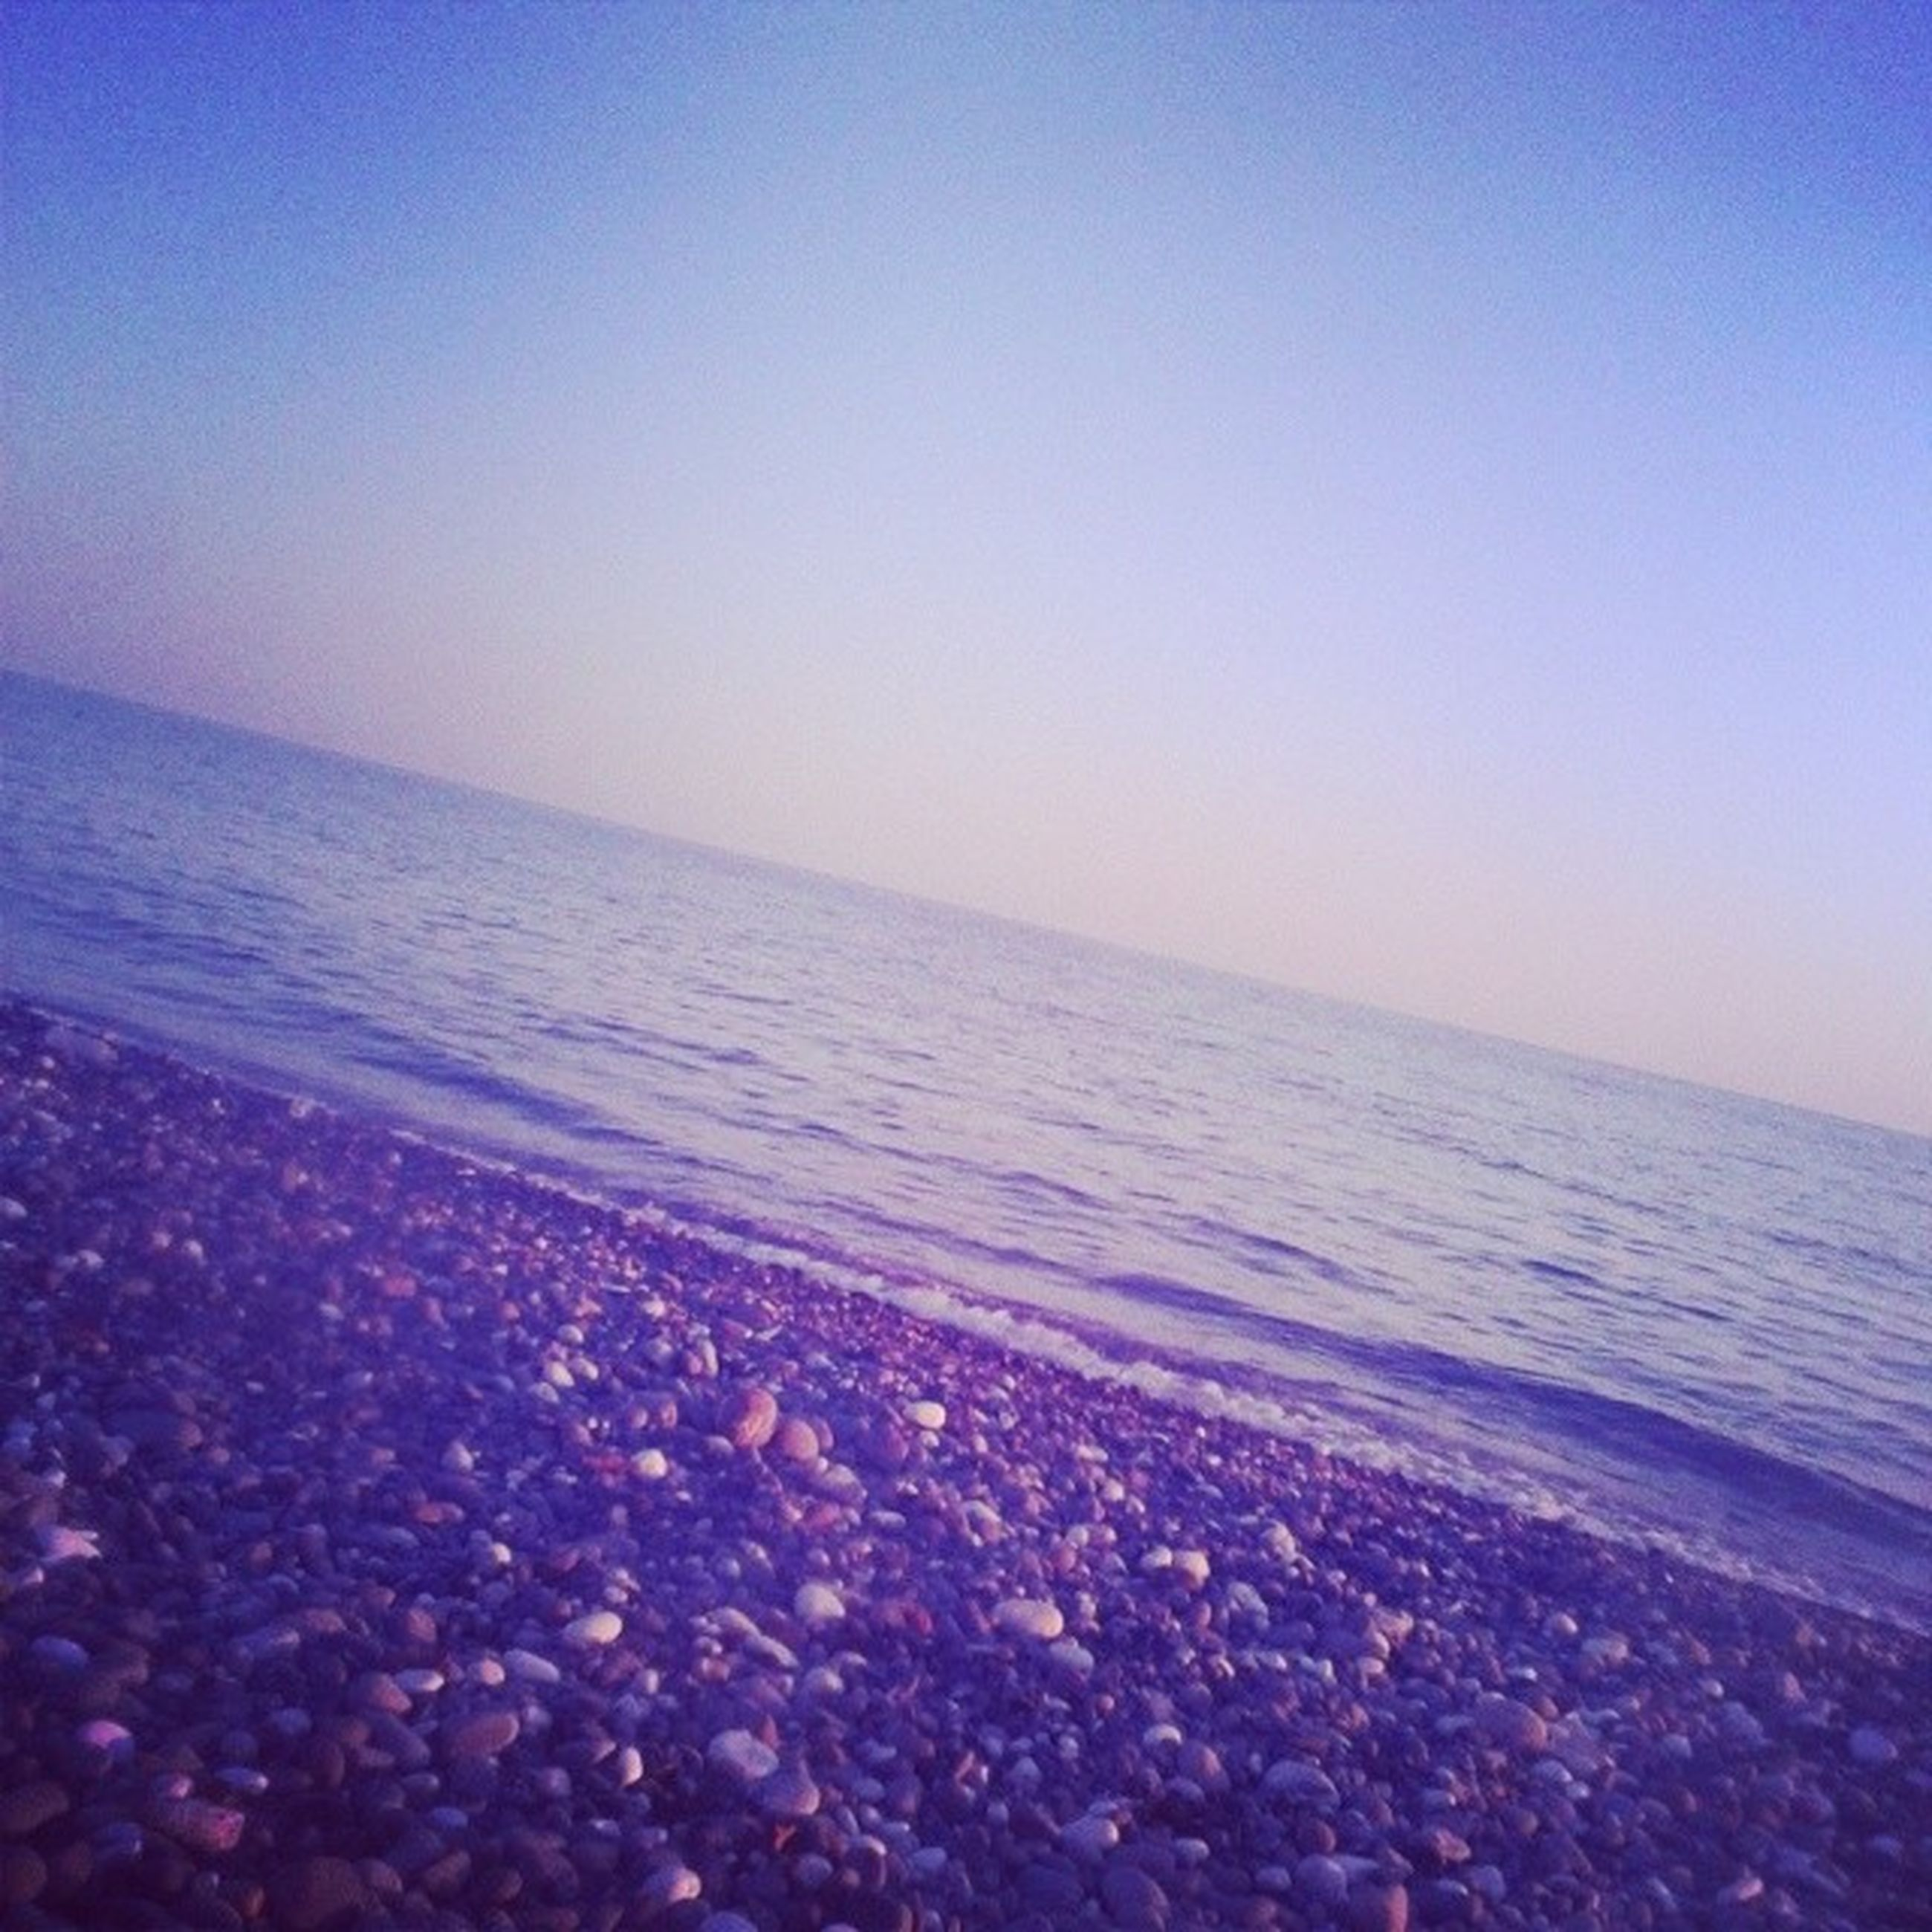 sea, horizon over water, beach, water, shore, scenics, clear sky, tranquil scene, tranquility, beauty in nature, copy space, nature, blue, sand, idyllic, sky, coastline, calm, sunset, outdoors